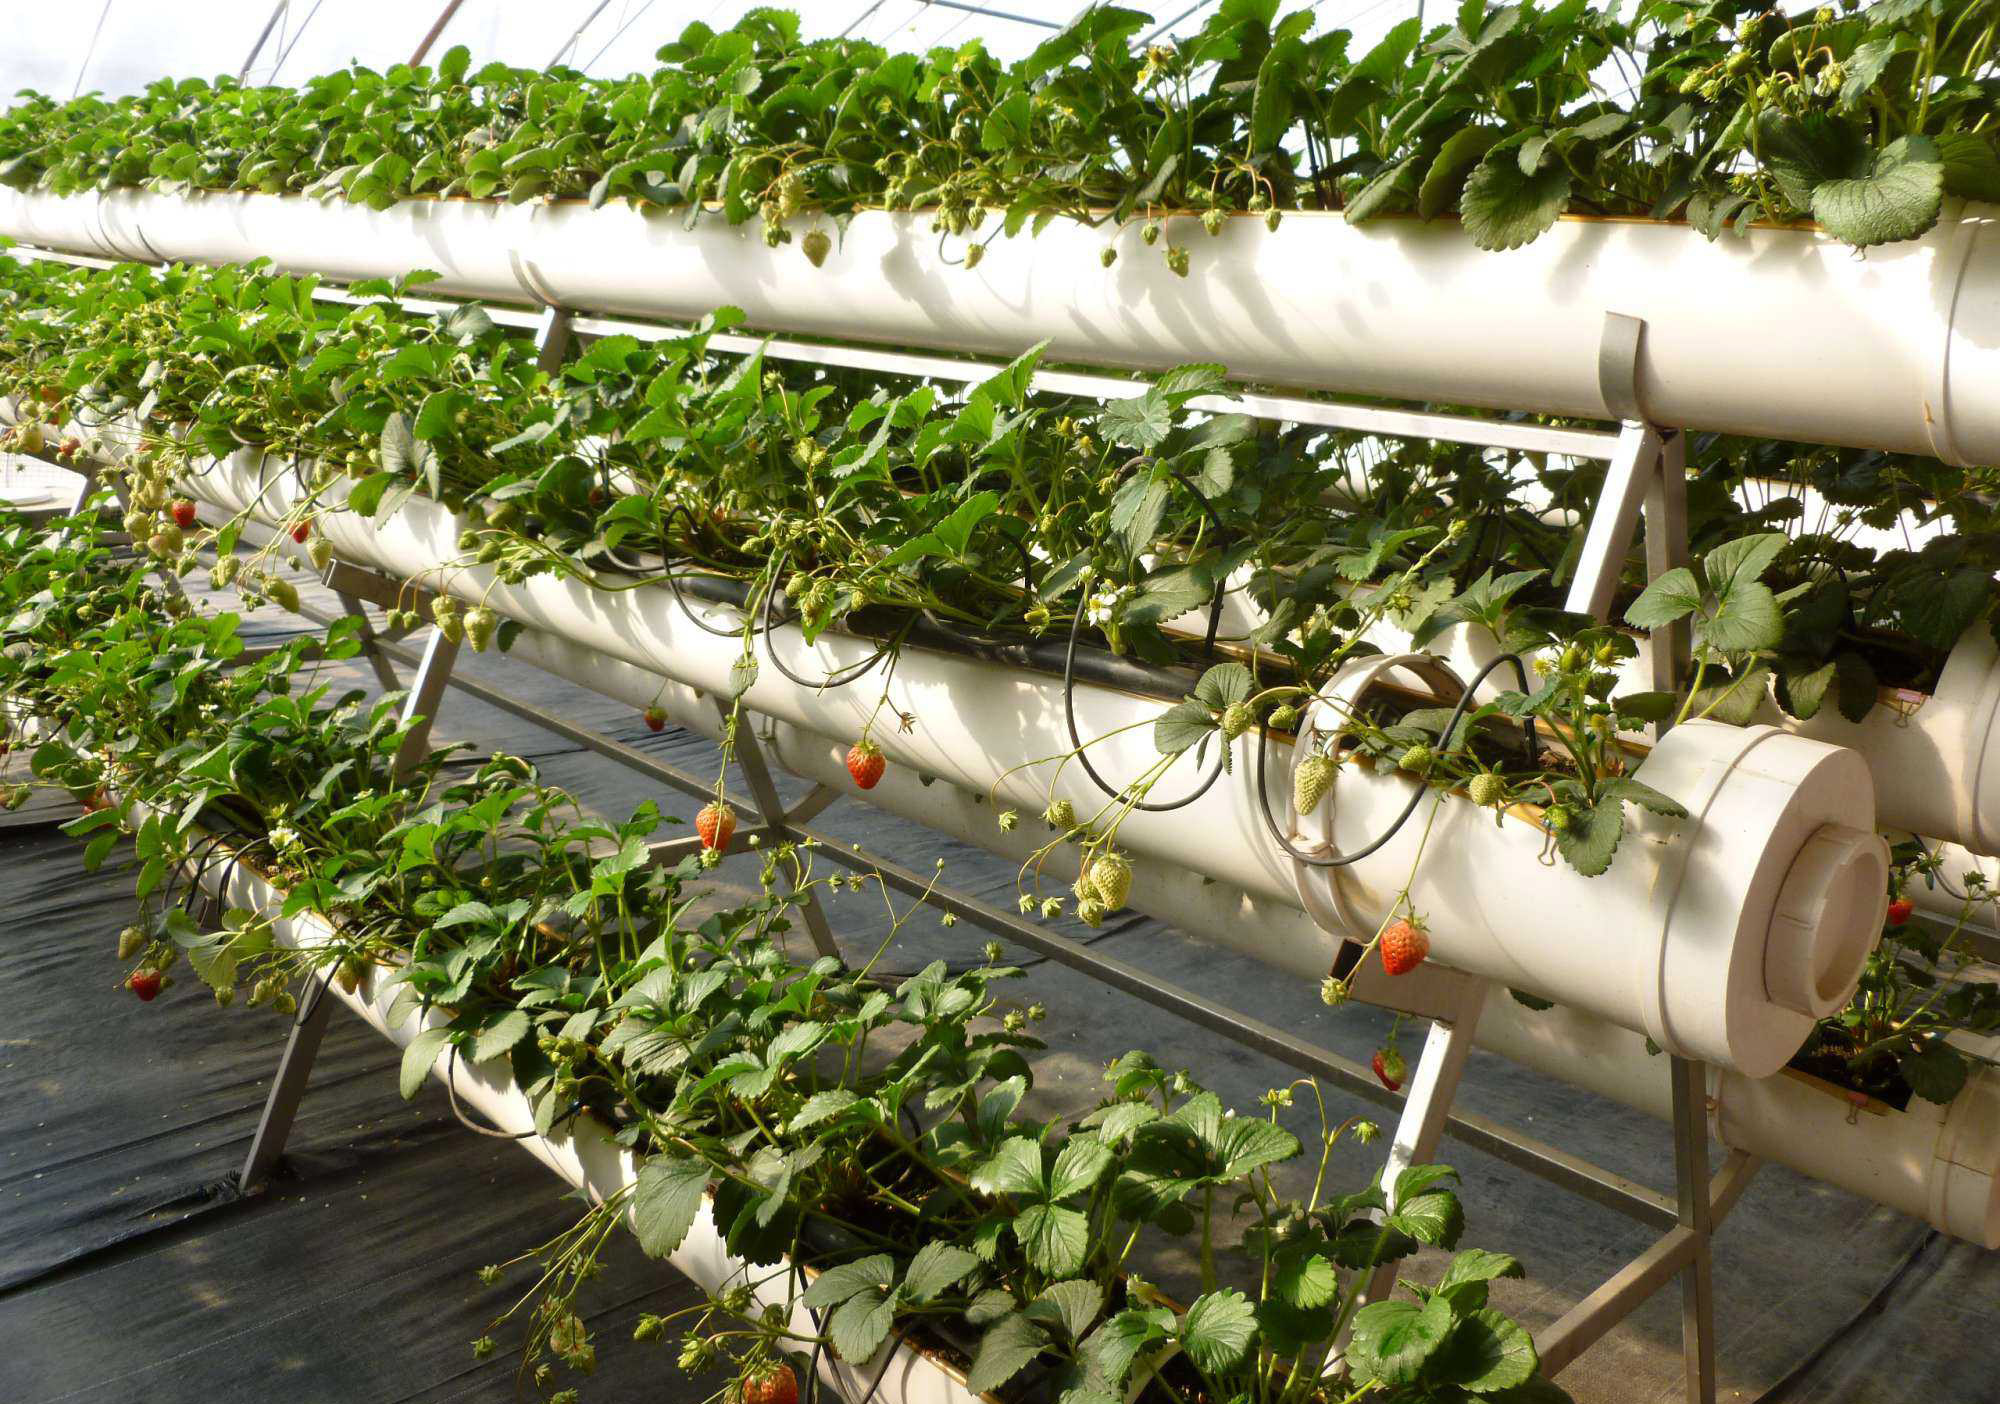 Strawberry plastic greenhouse cultivation is popular